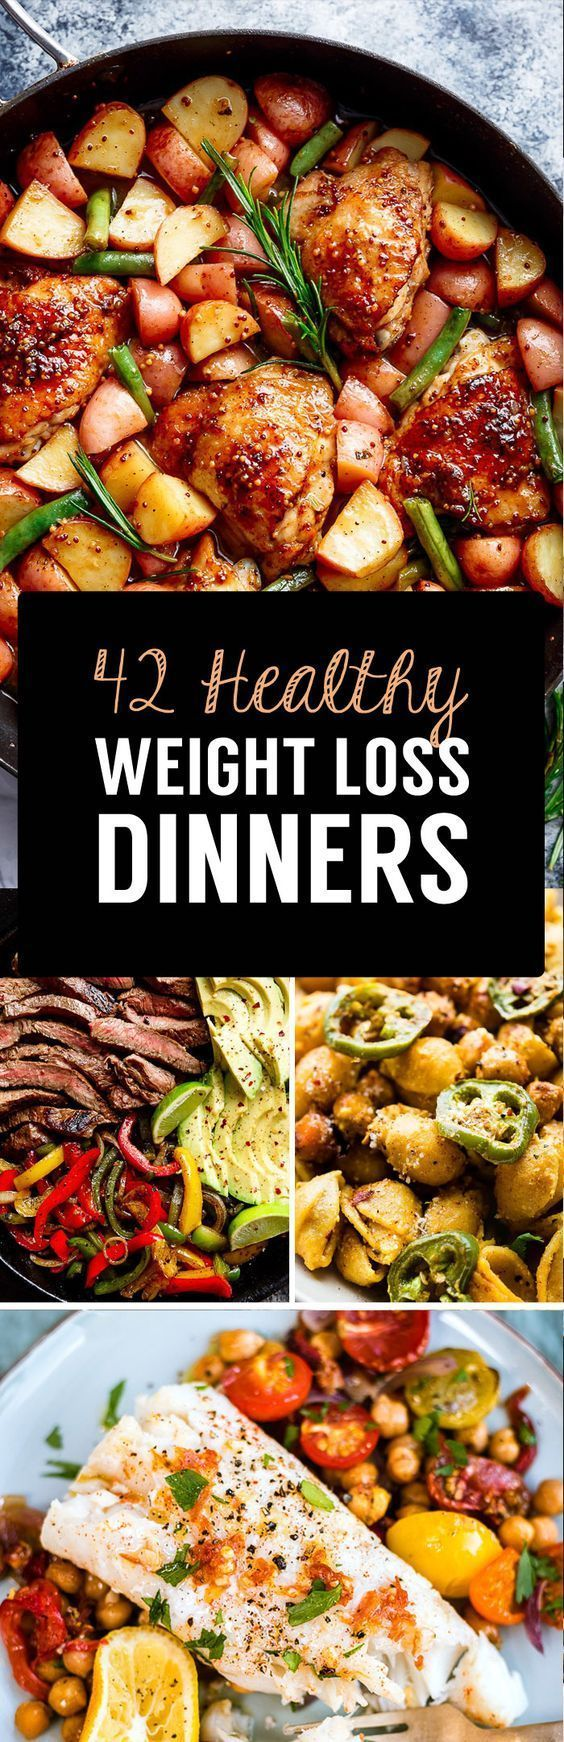 Tasty meals make losing weight quick and easy. If you enjoy the food, you are ...  - Fitness food -...